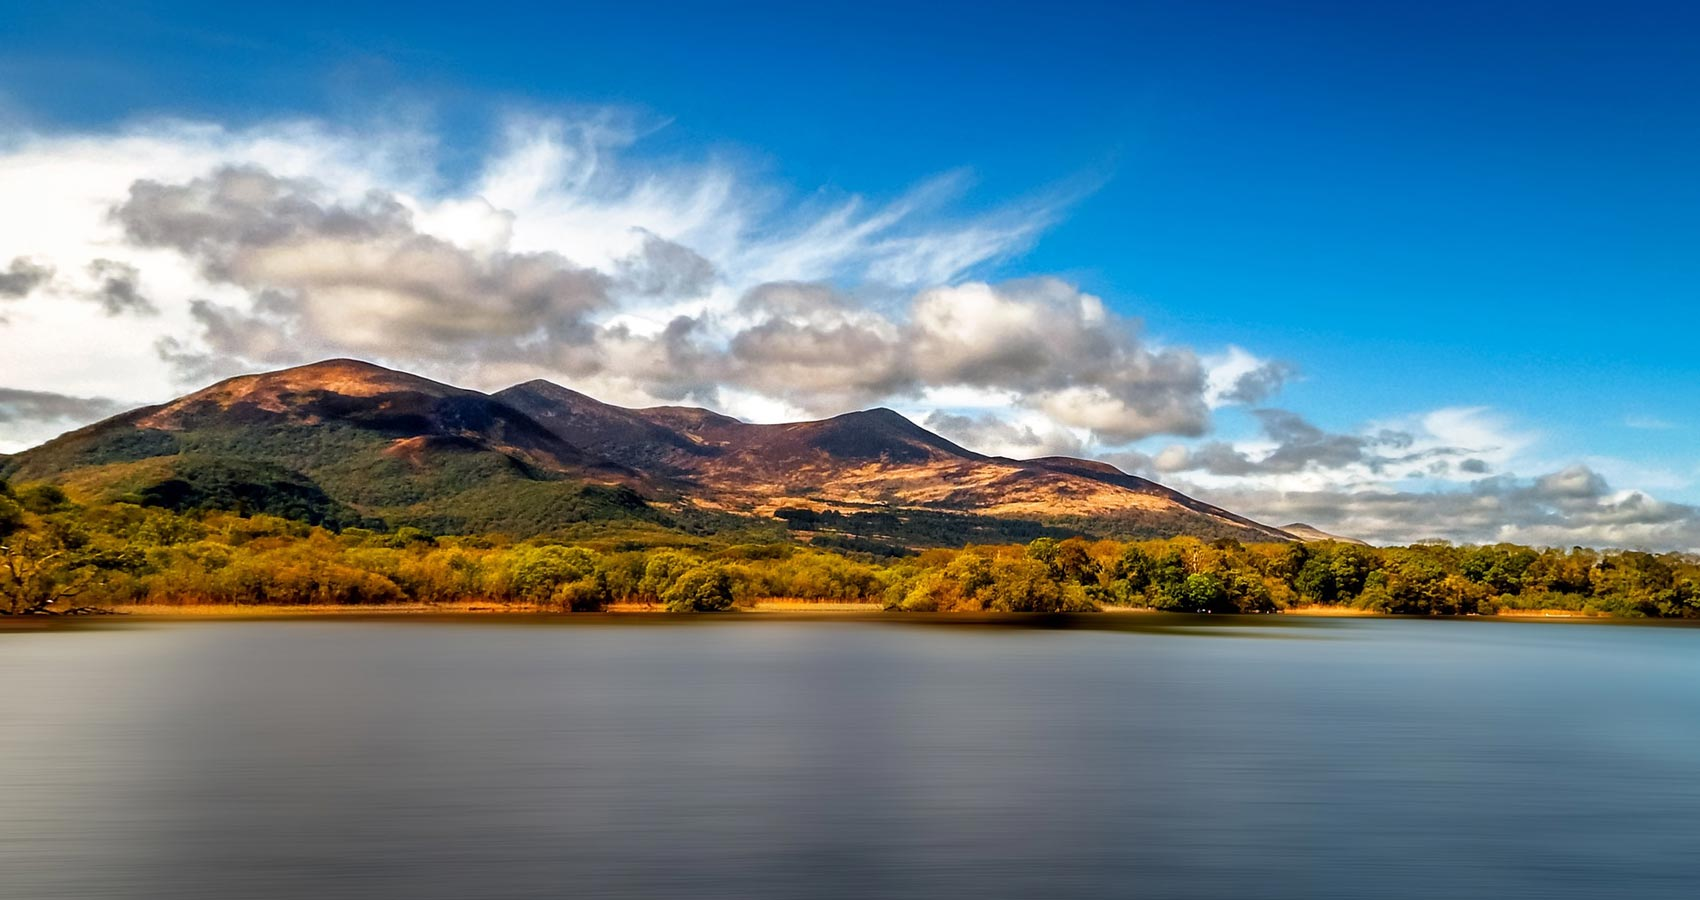 The Lake Isle of Innisfree by William Butler Yeats at Spillwords.com